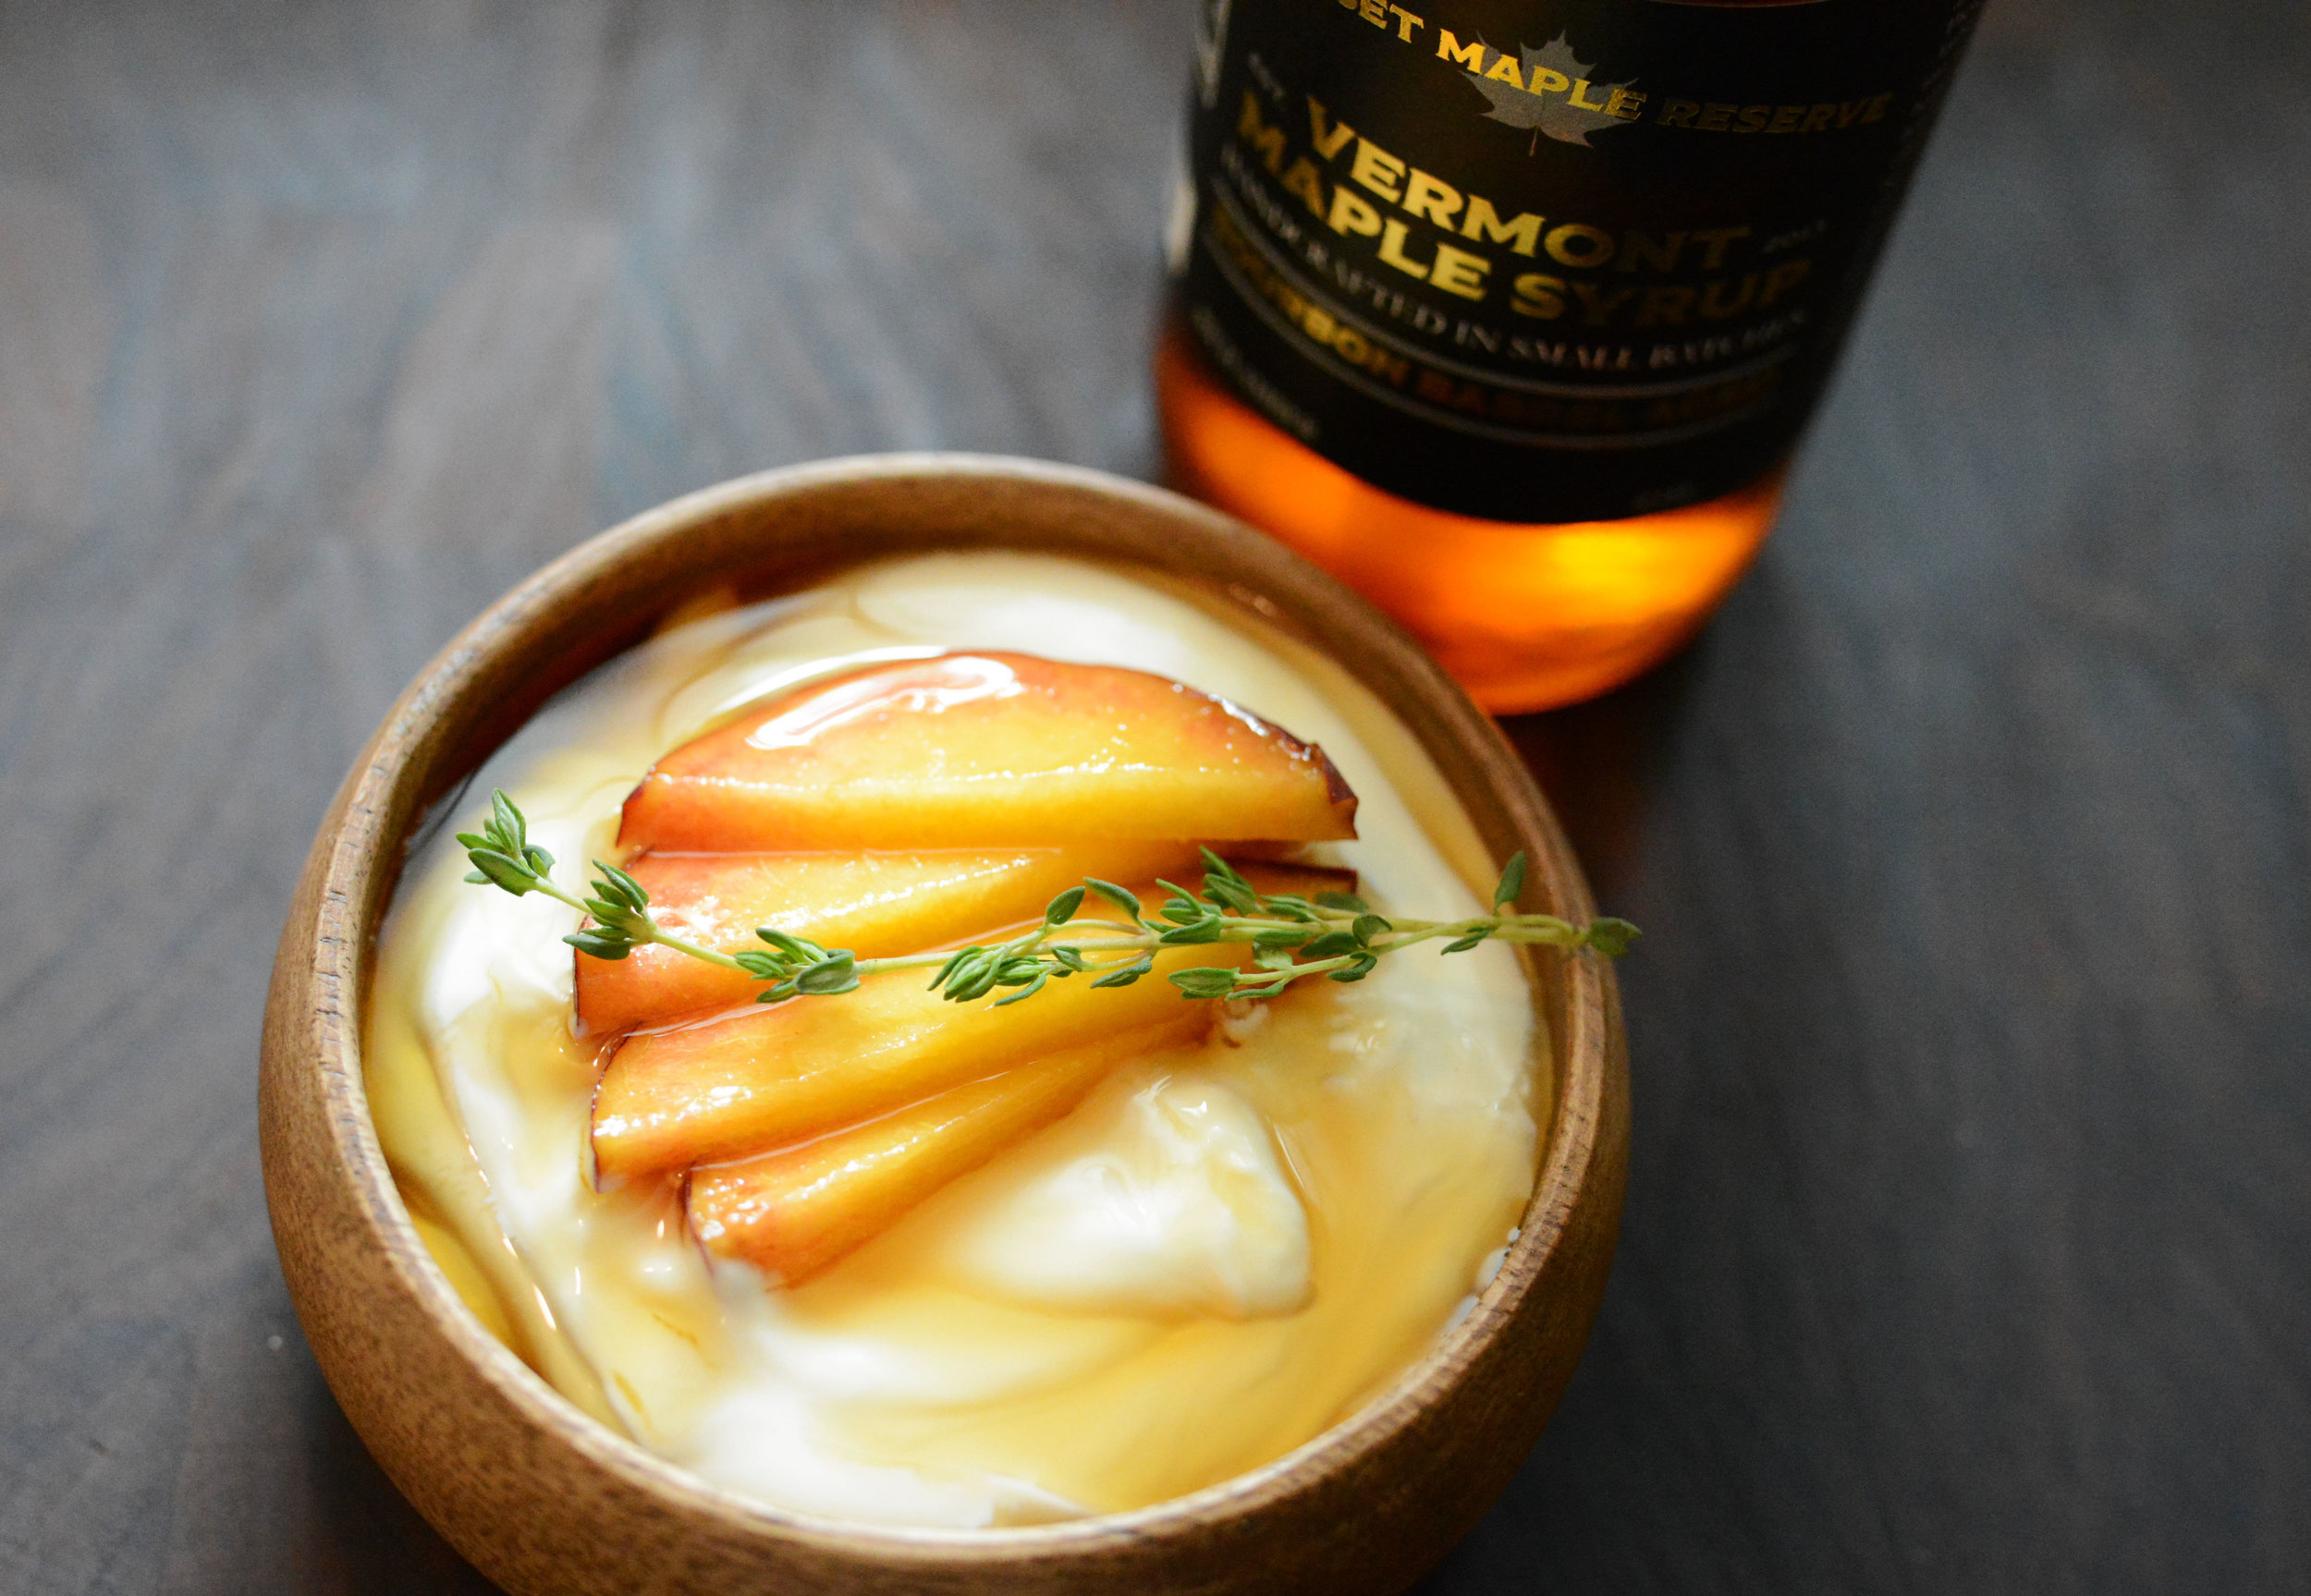 Maple Peach Yogurt - Dice 1 ripe peach and sprinkle over plain yogurtDrizzle desired amount of our Bourbon Barrel Aged Maple Syrup over peaches and yogurtGarnish with fresh Thyme